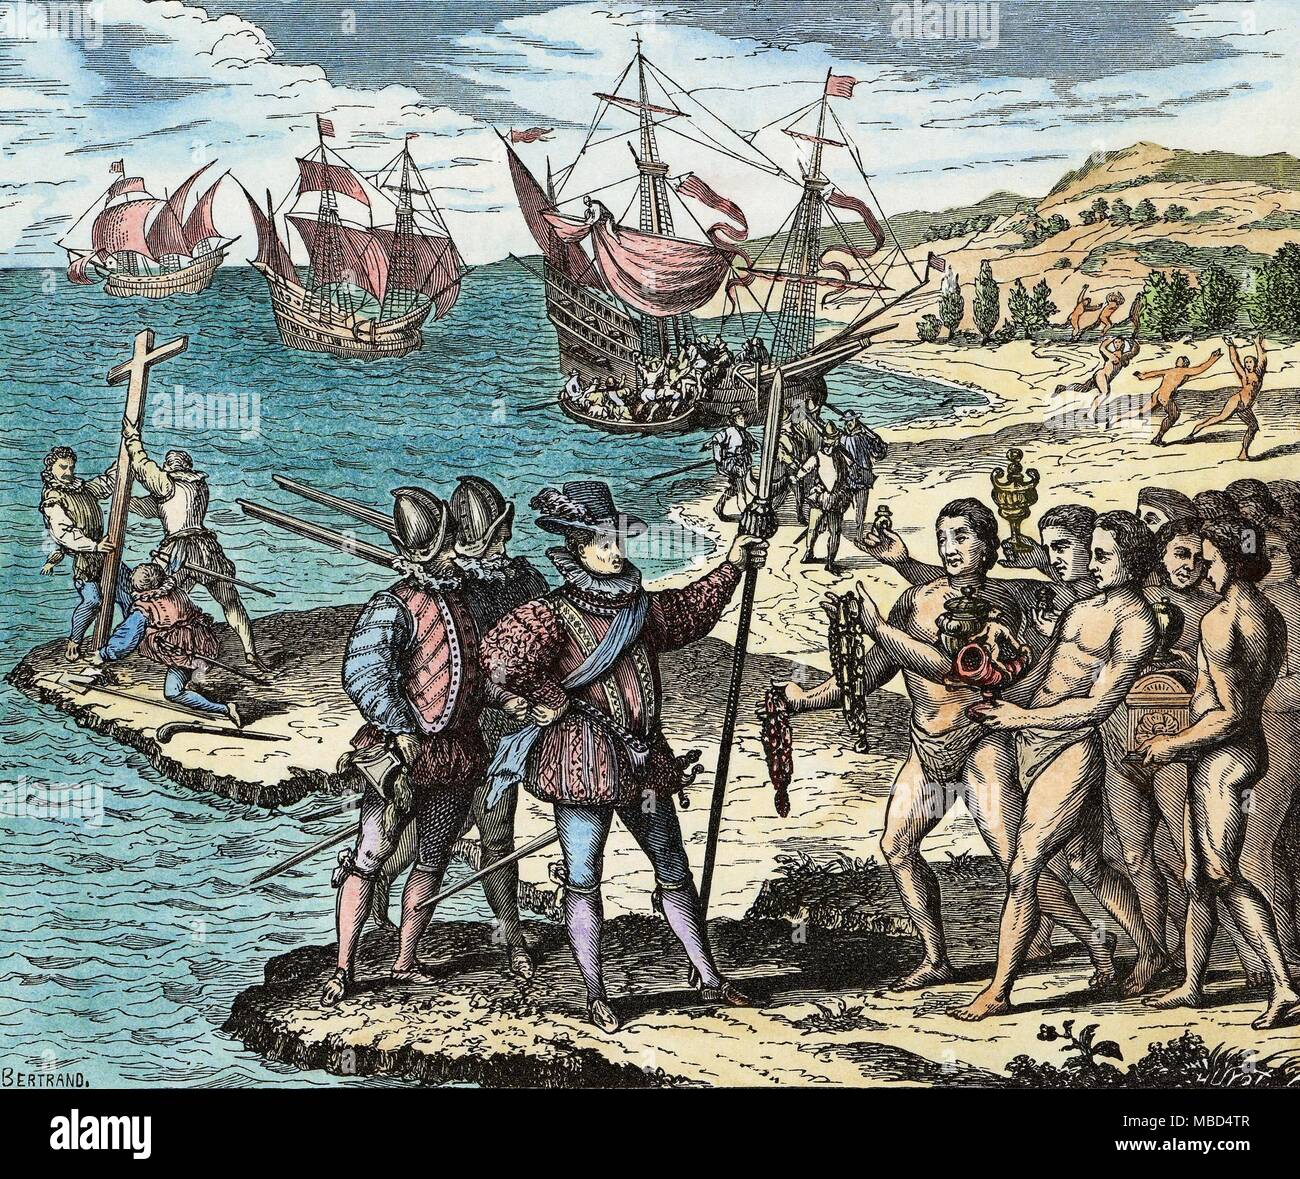 HISTORY OF AMERICA - COLUMBUS  On 12 May 1492, Christopher Columbus erects the cross, and invests the Isle of Guanahani (in the Bahamas) with the name St. Salvador.   Woodengraving based on the copperprint by Theodore de Bry, Grands Voyages, 1590. - Stock Image